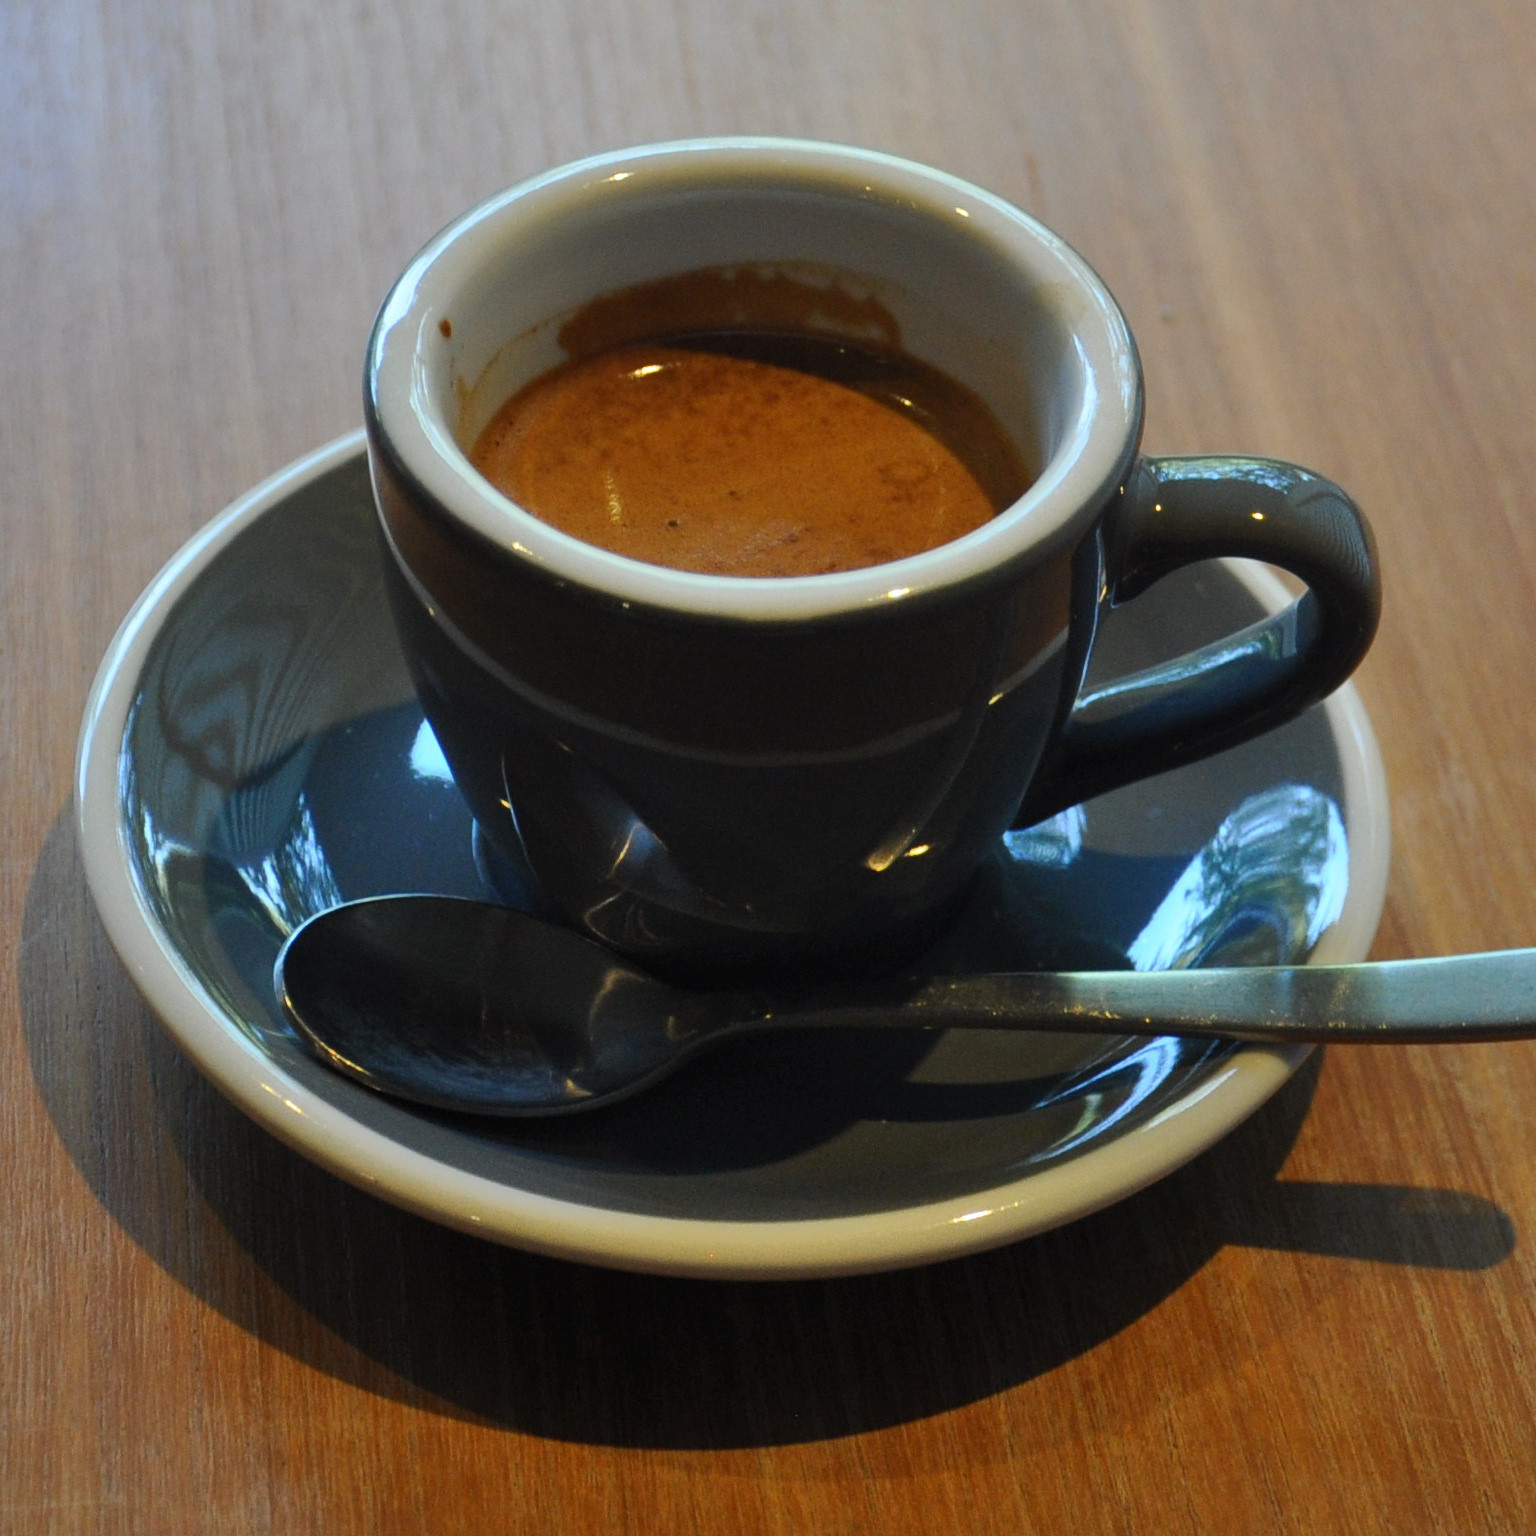 A lovely espresso at Vermillion Cafe in Kyoto, made using its bespoke house-blend and served in a classic cup.